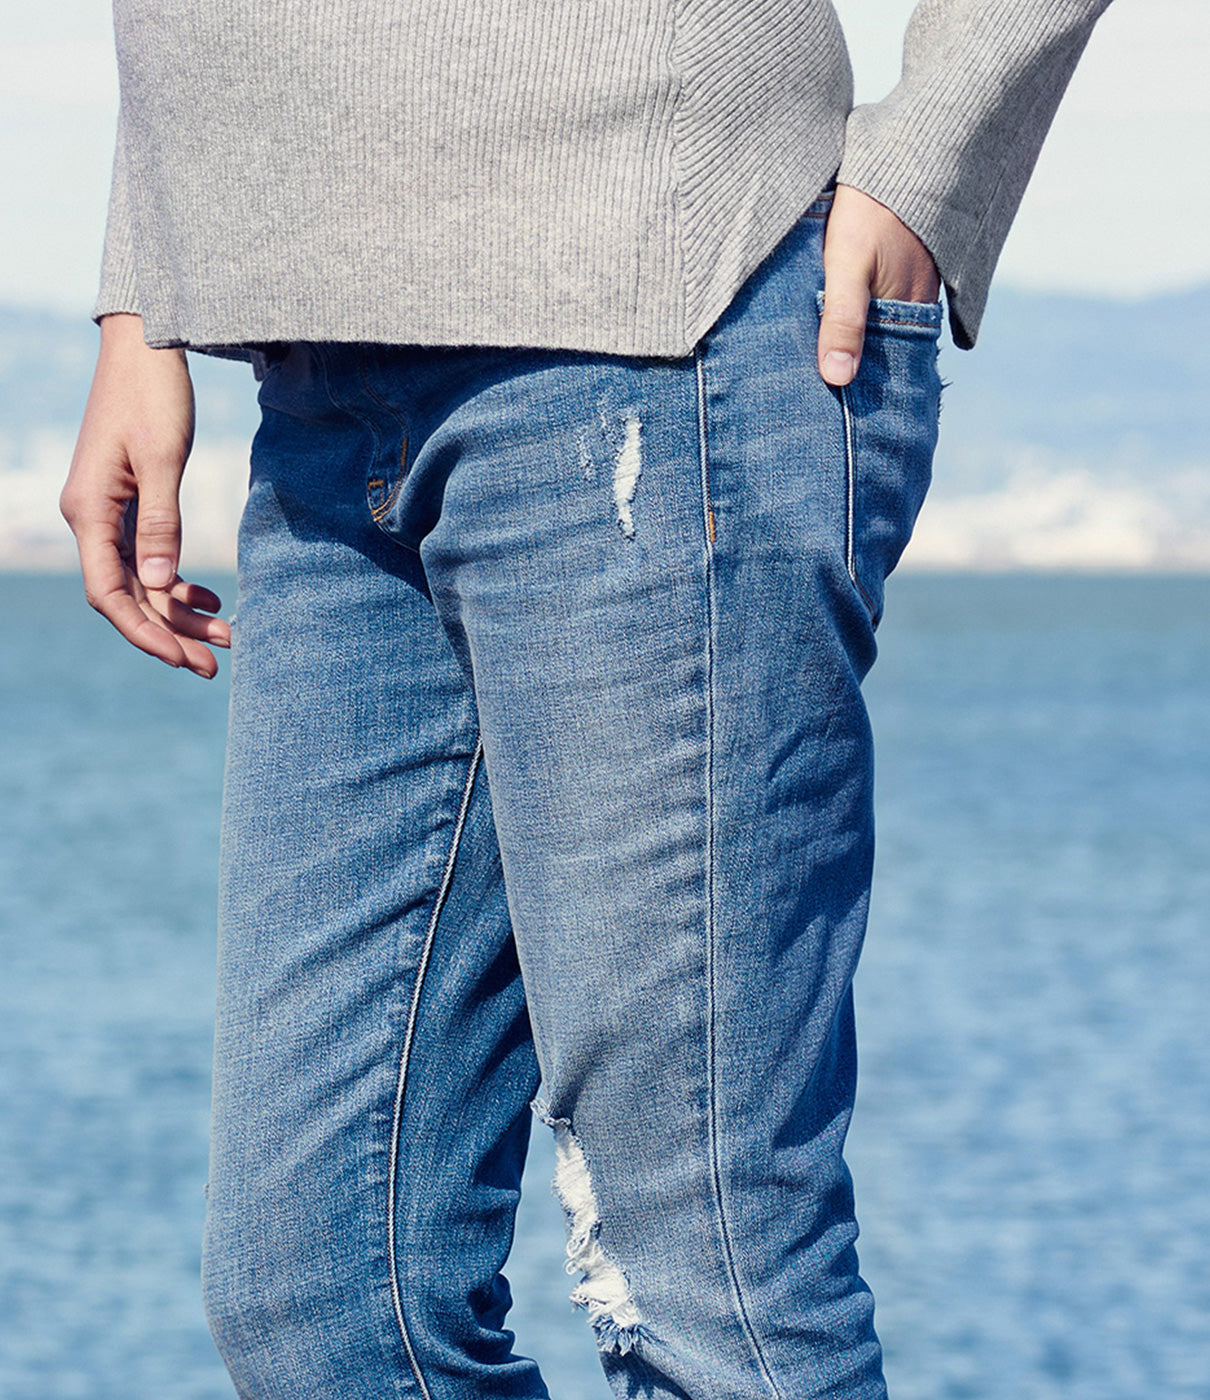 IN THE DETAILSPremium denim with functional back pockets and fly plus flat front pockets for smooth fit.